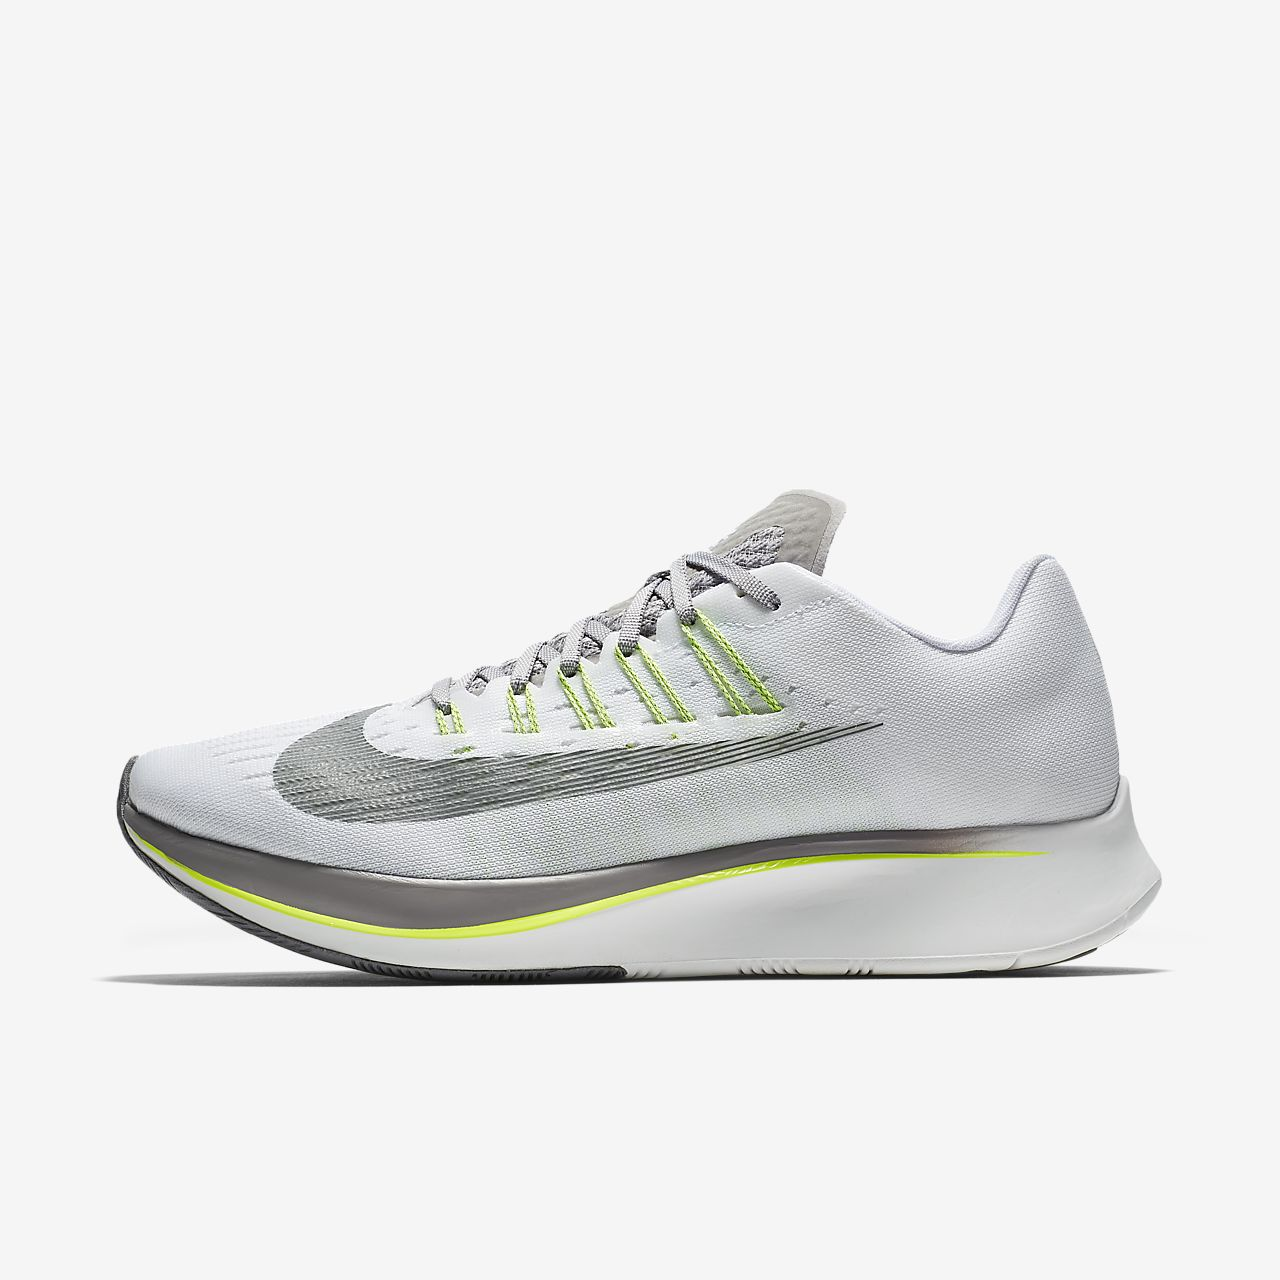 separation shoes 6d4d1 8a321 ... Nike Zoom Fly Mens Running Shoe